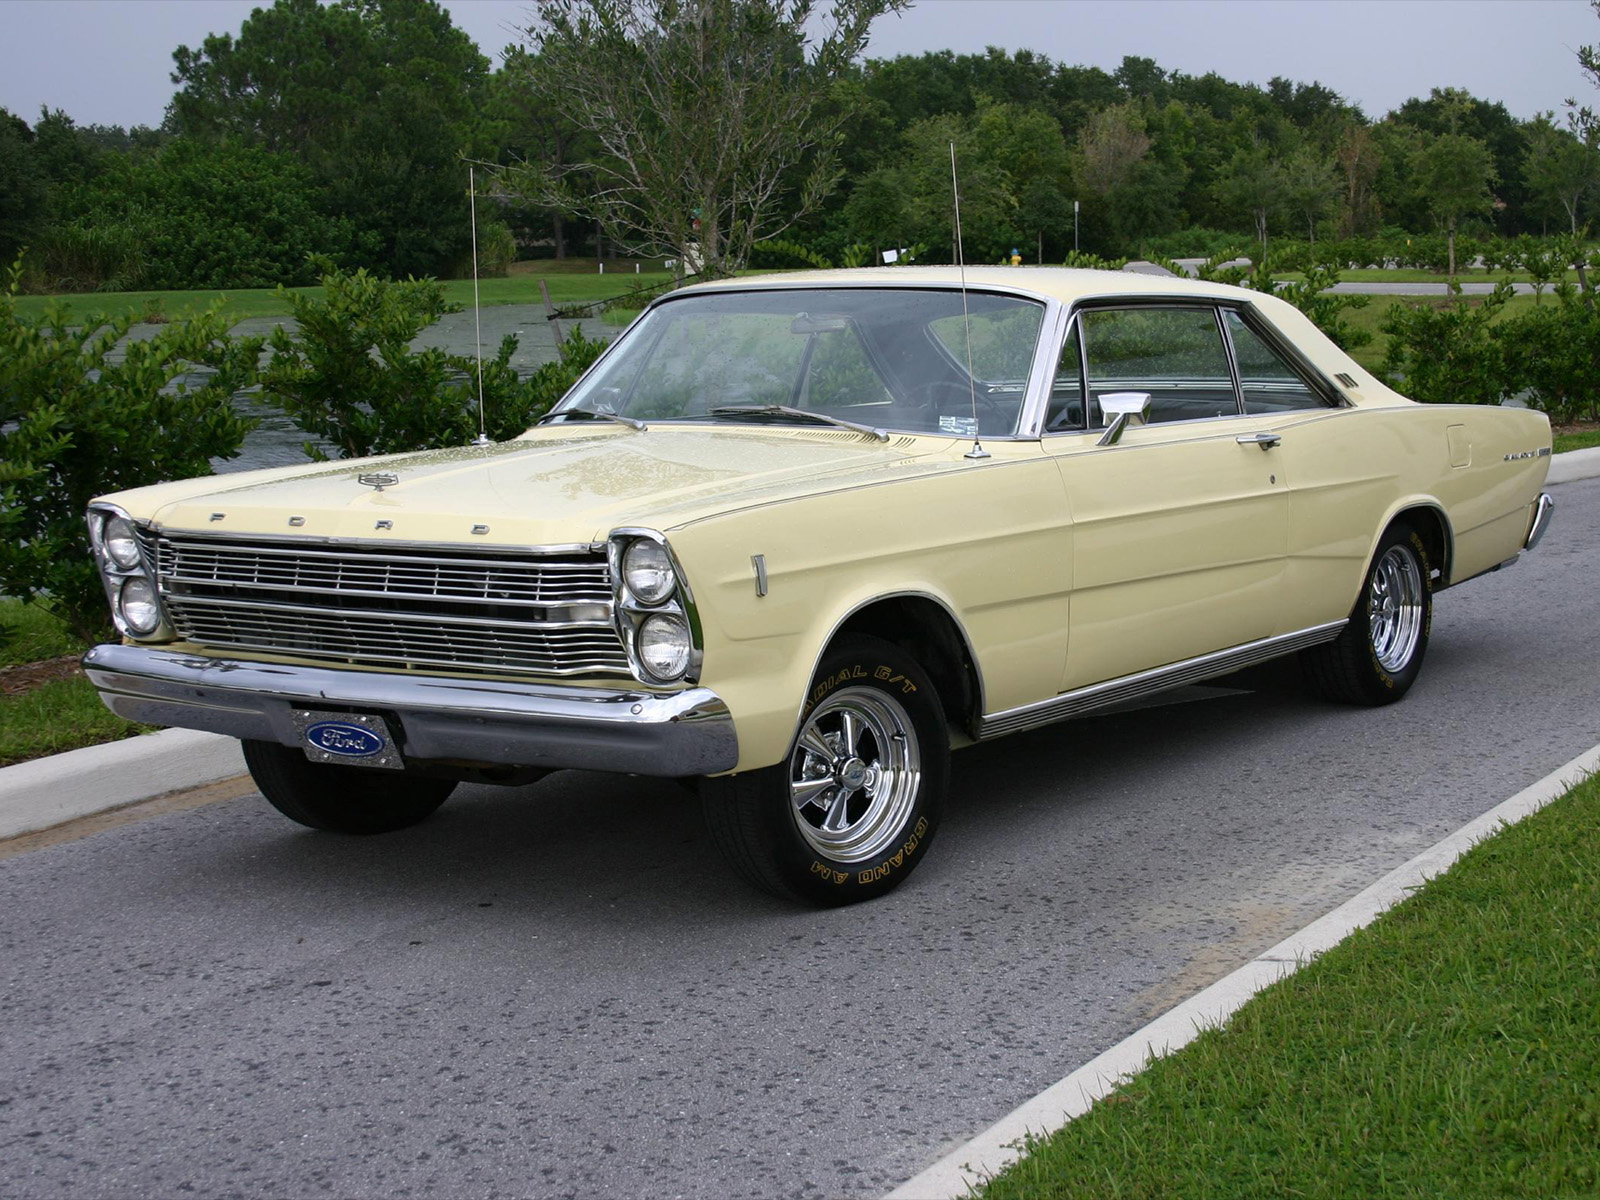 Ford Galaxie #4